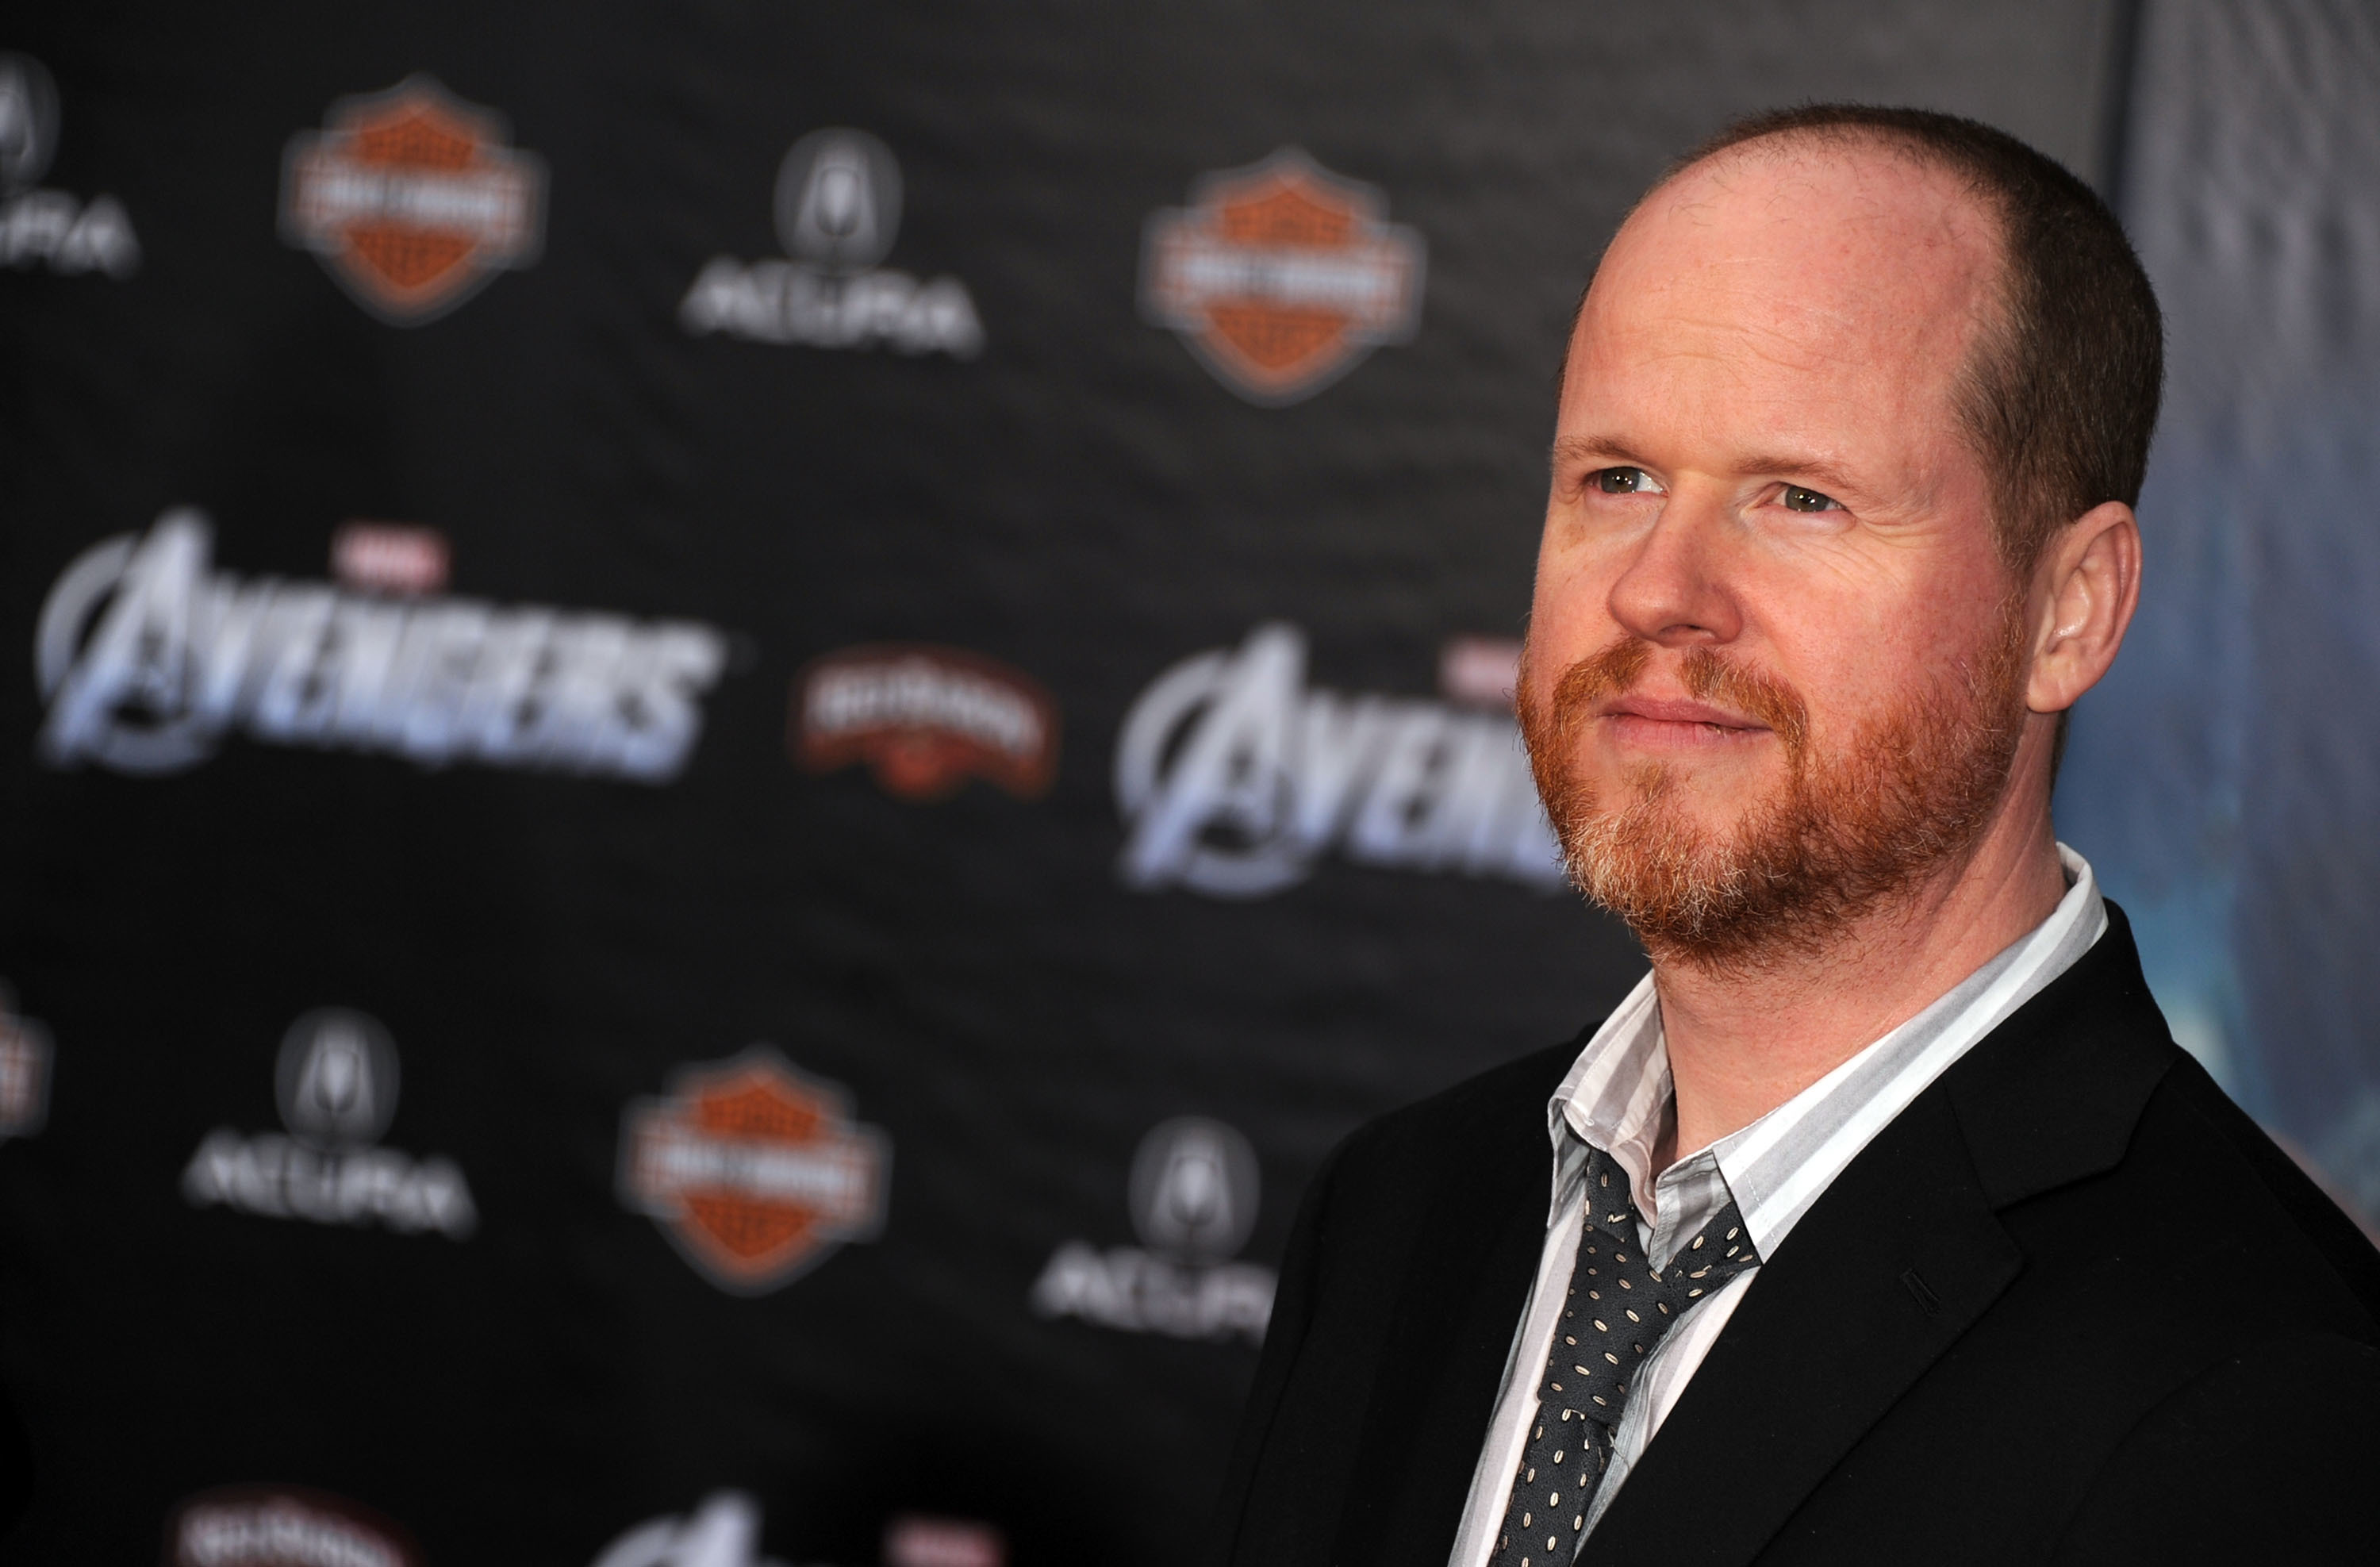 Batgirl to get her own movie directed by Joss Whedon